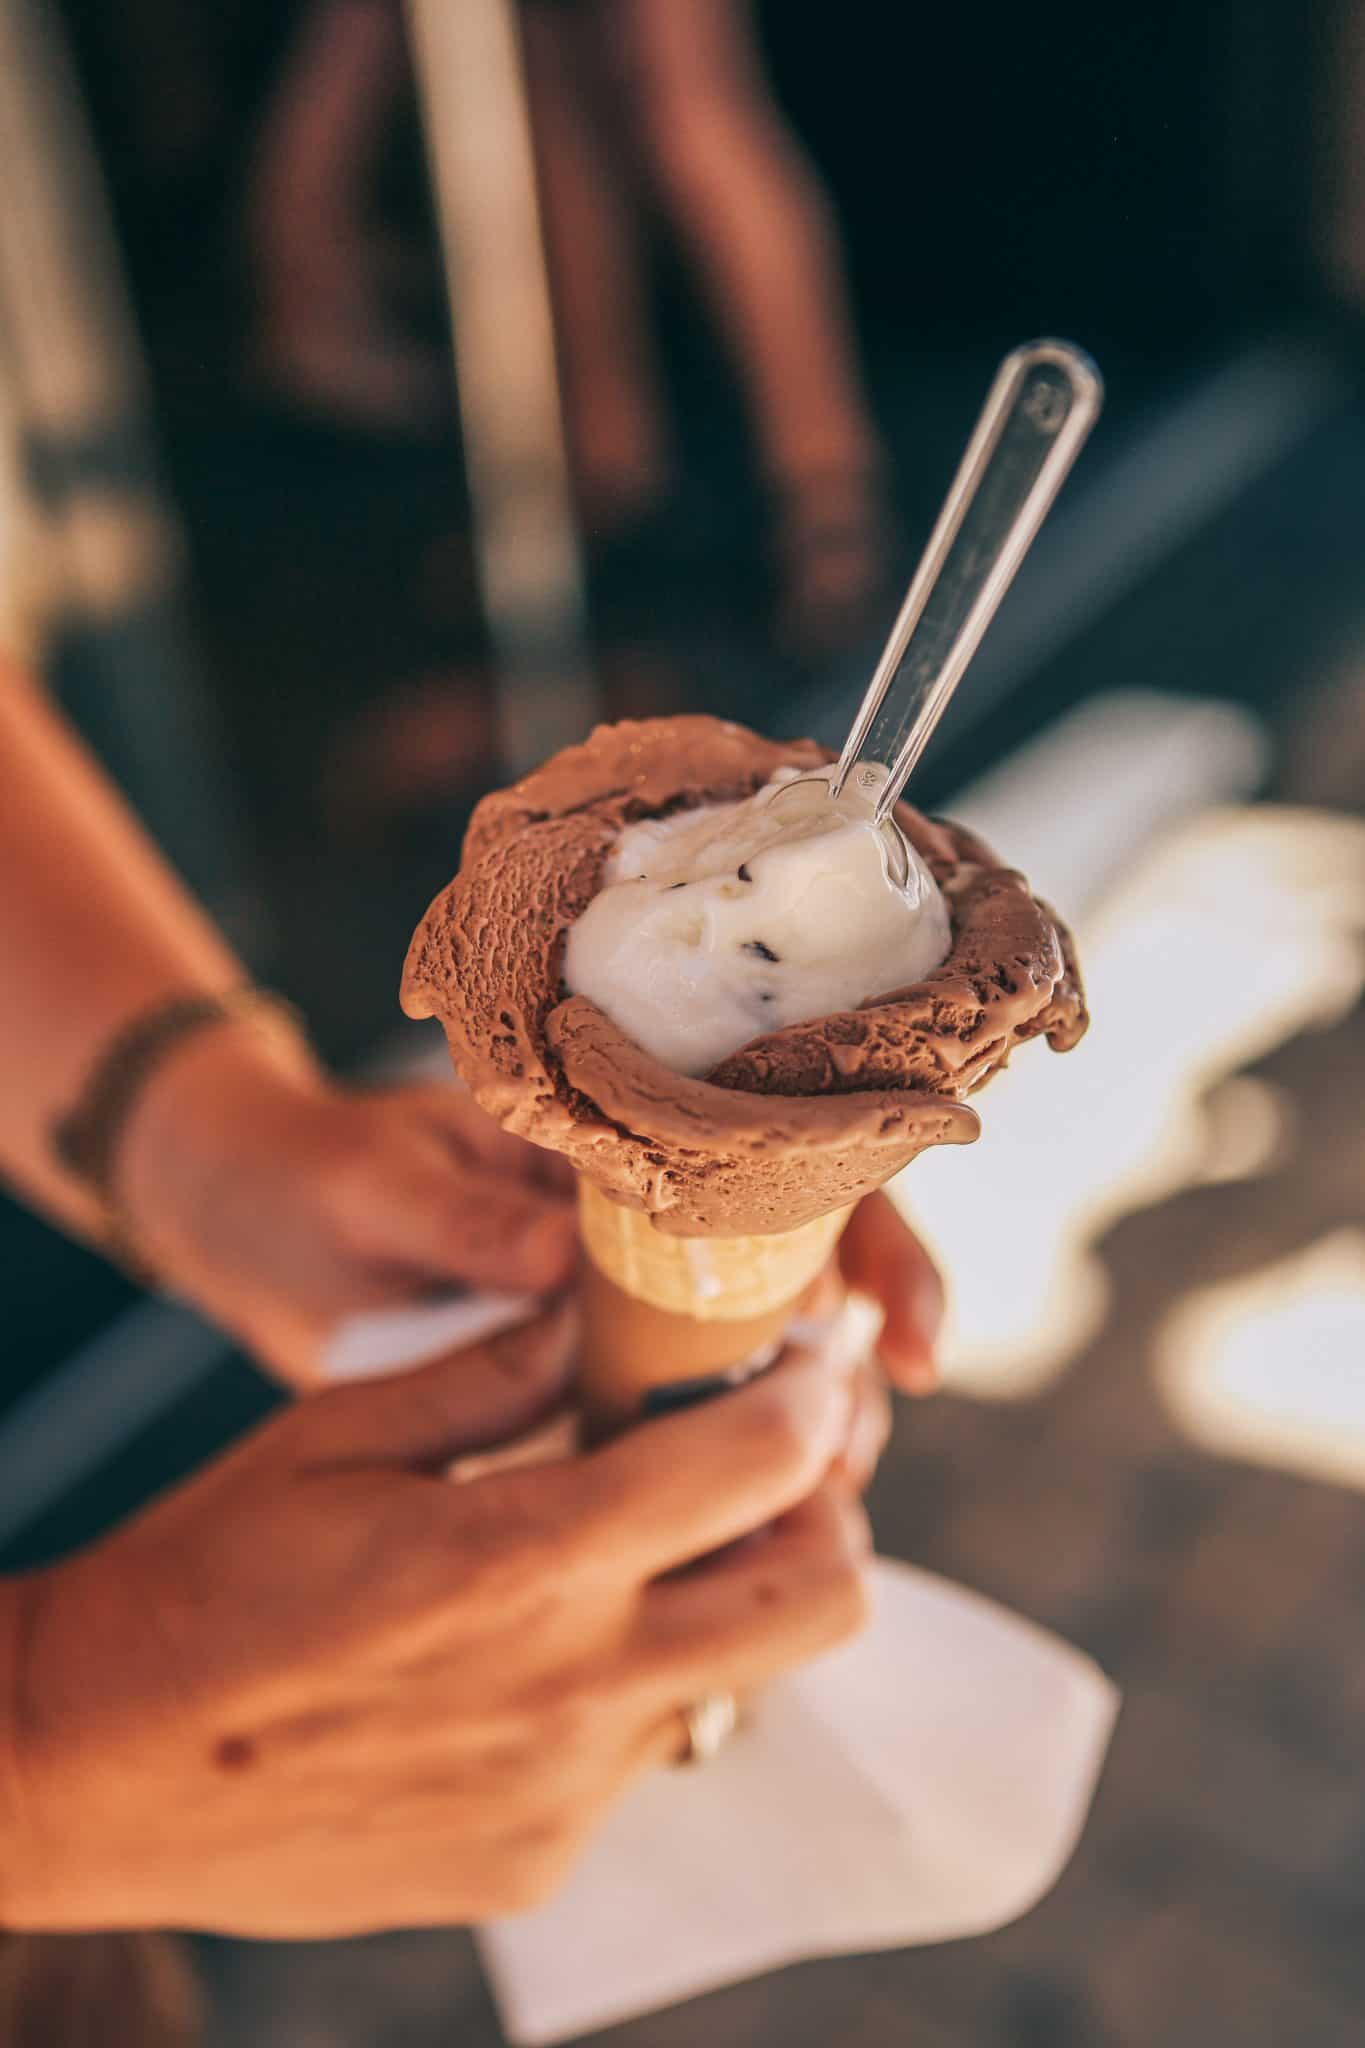 gelato in south of france, travel tips for south of france - My Style Vita